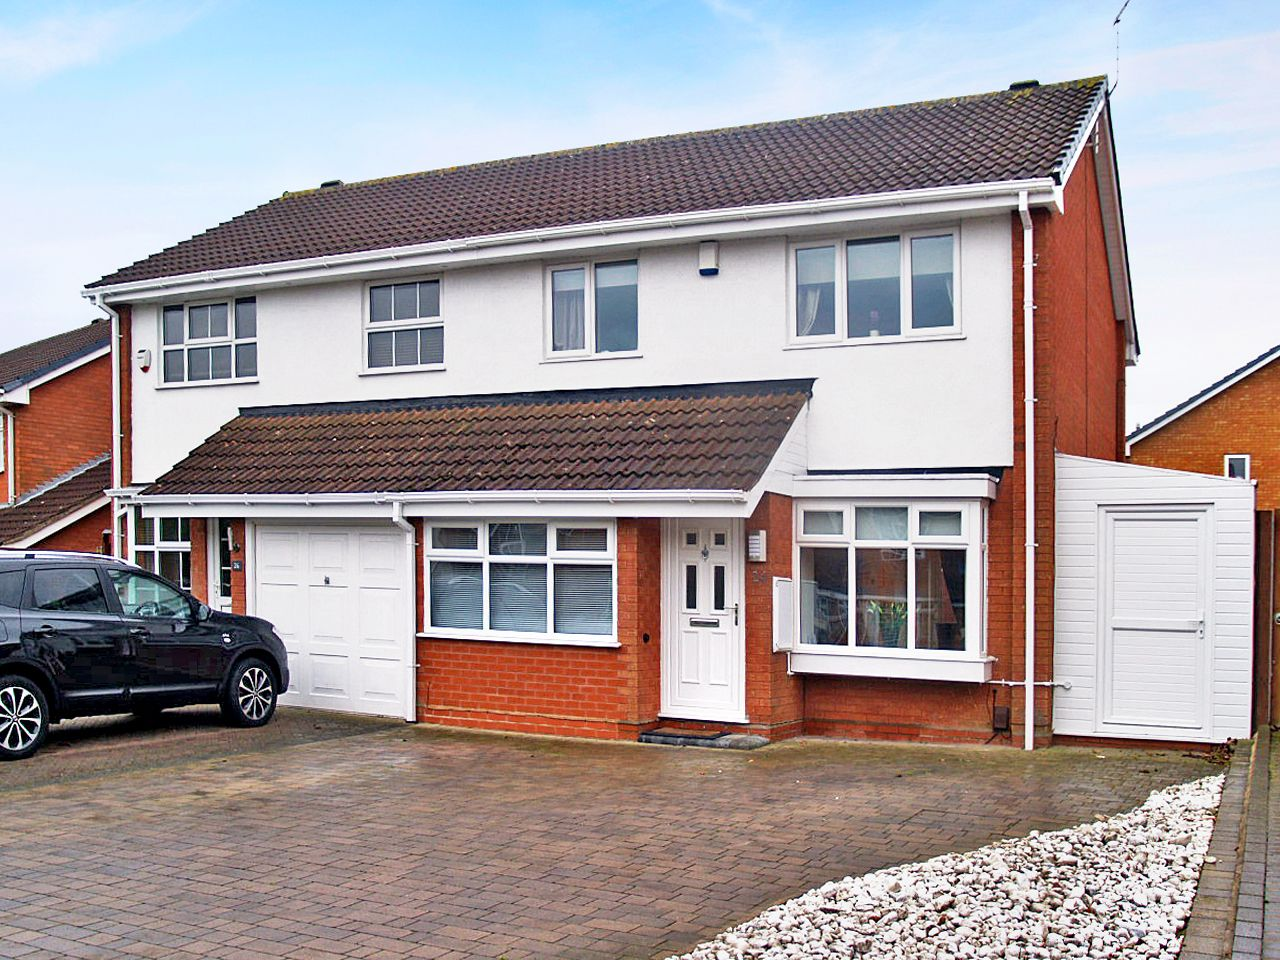 3 bedroom semi-detached house To Let in Solihull - Photograph 1.